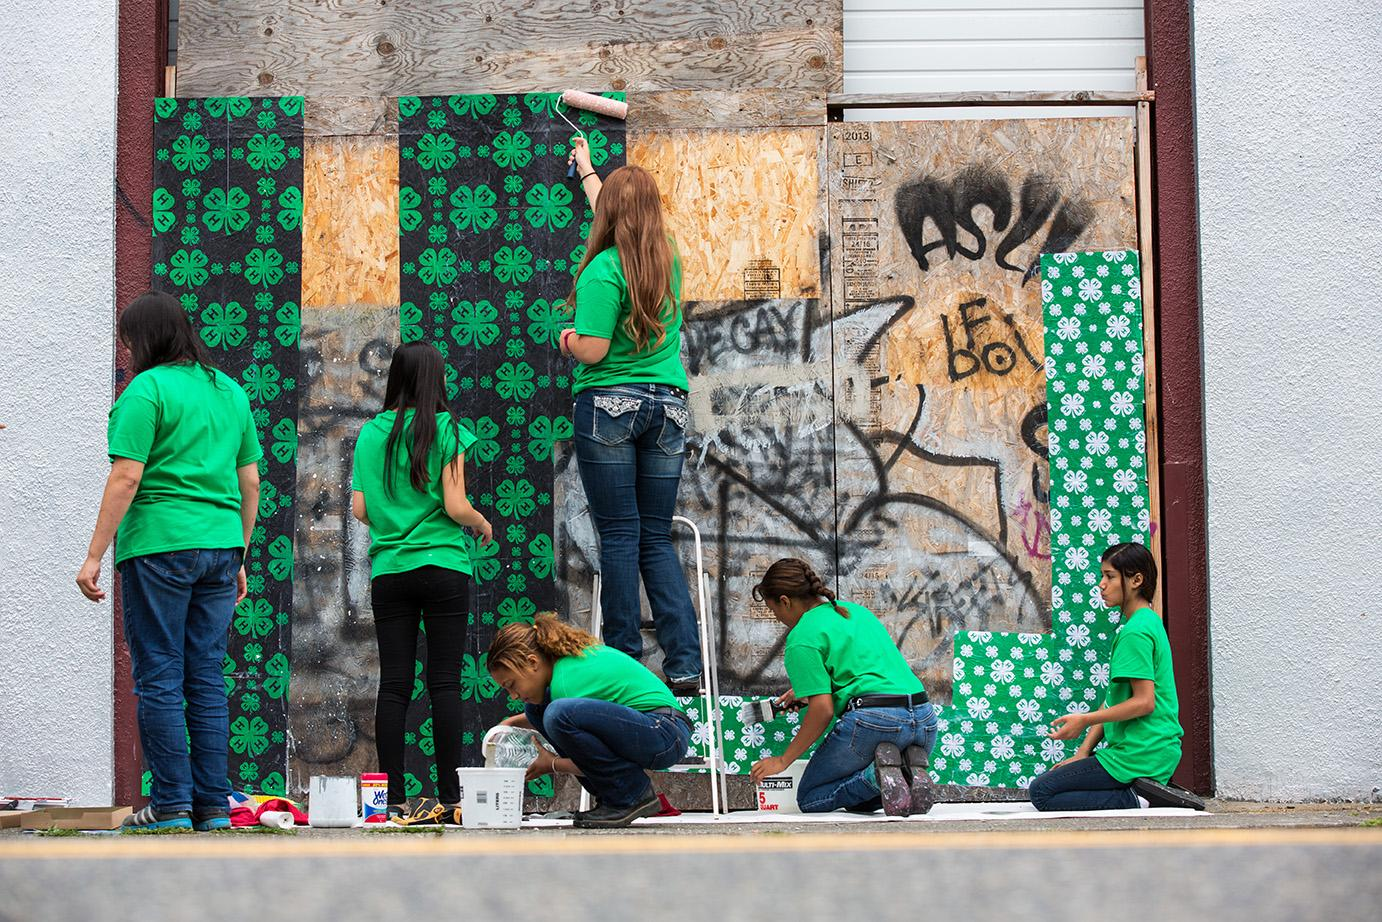 youth covering graffiti as a community service project